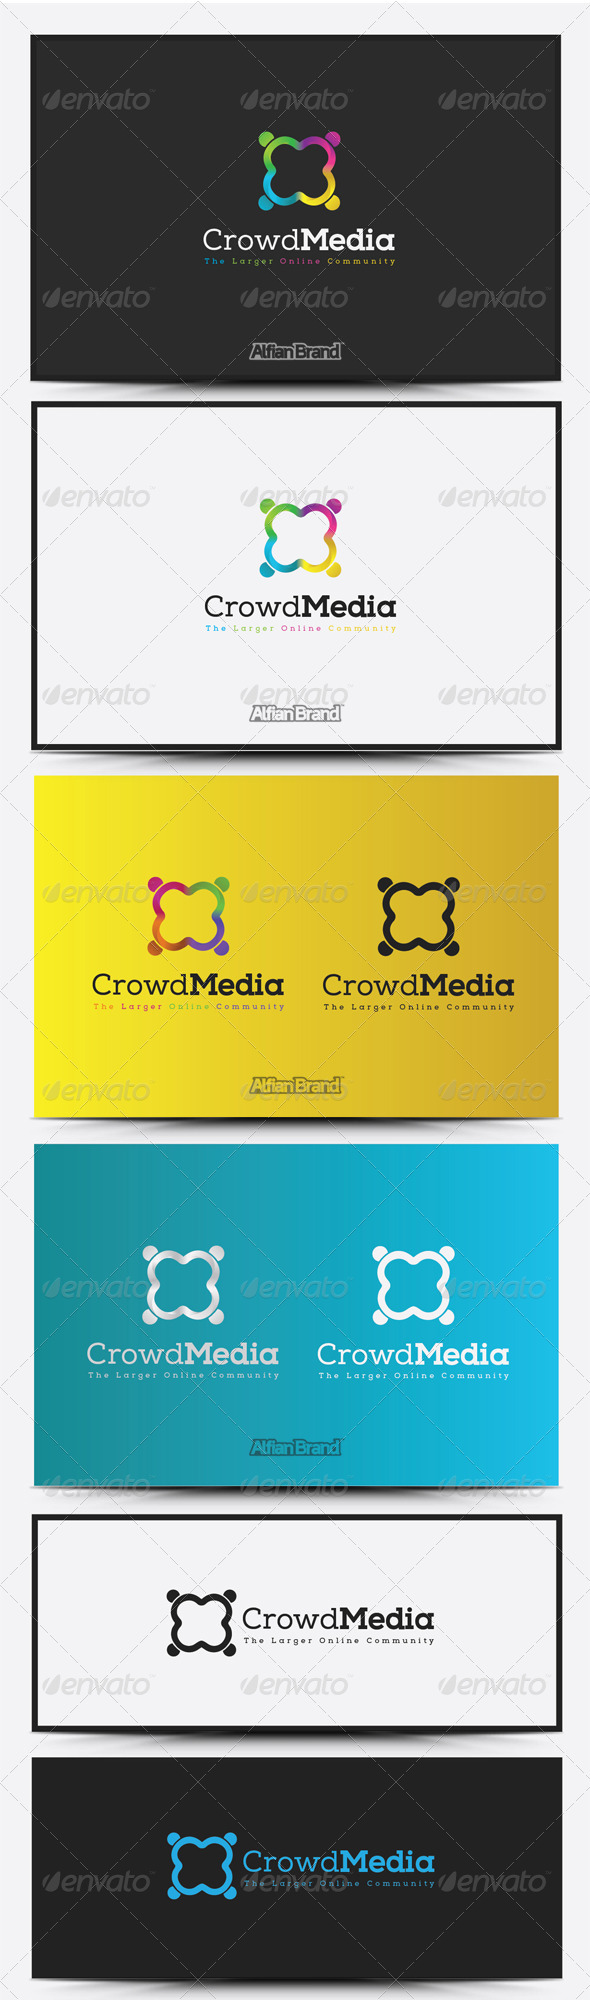 GraphicRiver Crowd Media Logo 8516790